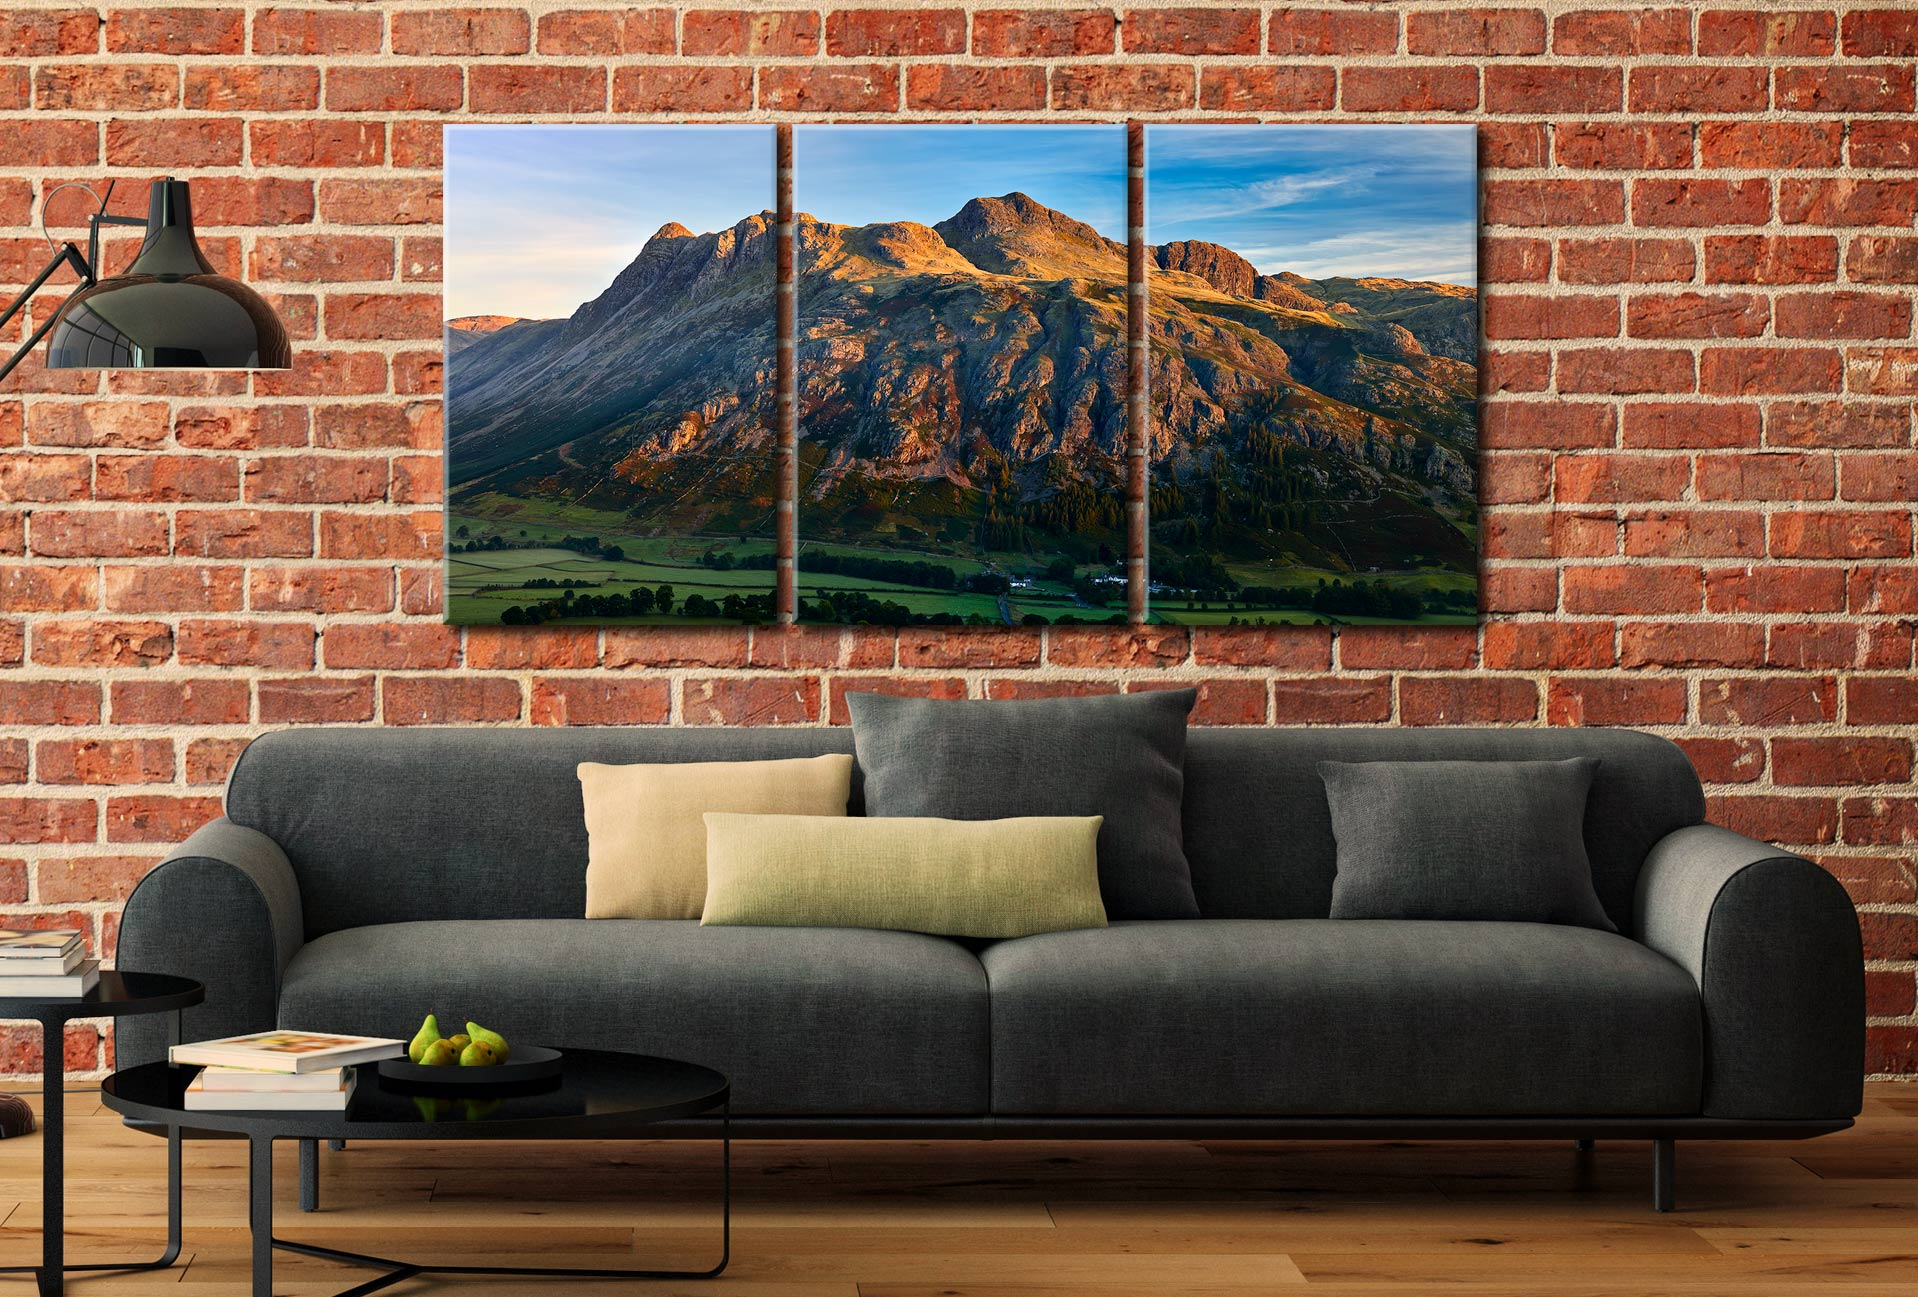 The Langdale Pikes in the Morning Light - 3 Panel Canvas on Wall